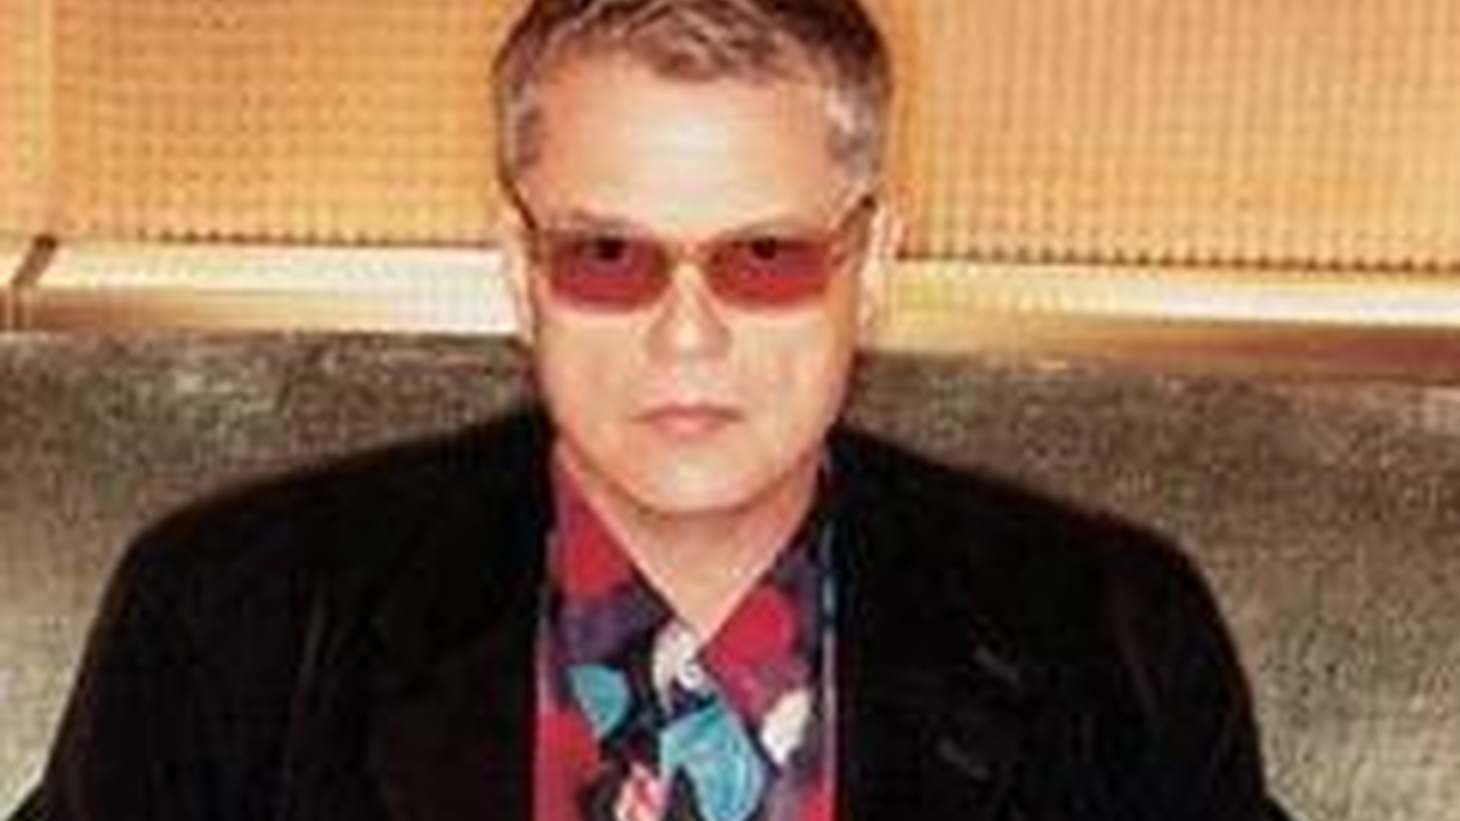 Jazz bassist and raconteur Charlie Haden shares anecdotes from the making of his latest release Ramblin Boy on Morning Becomes Eclectic with Jason Bentley at 11:15am.